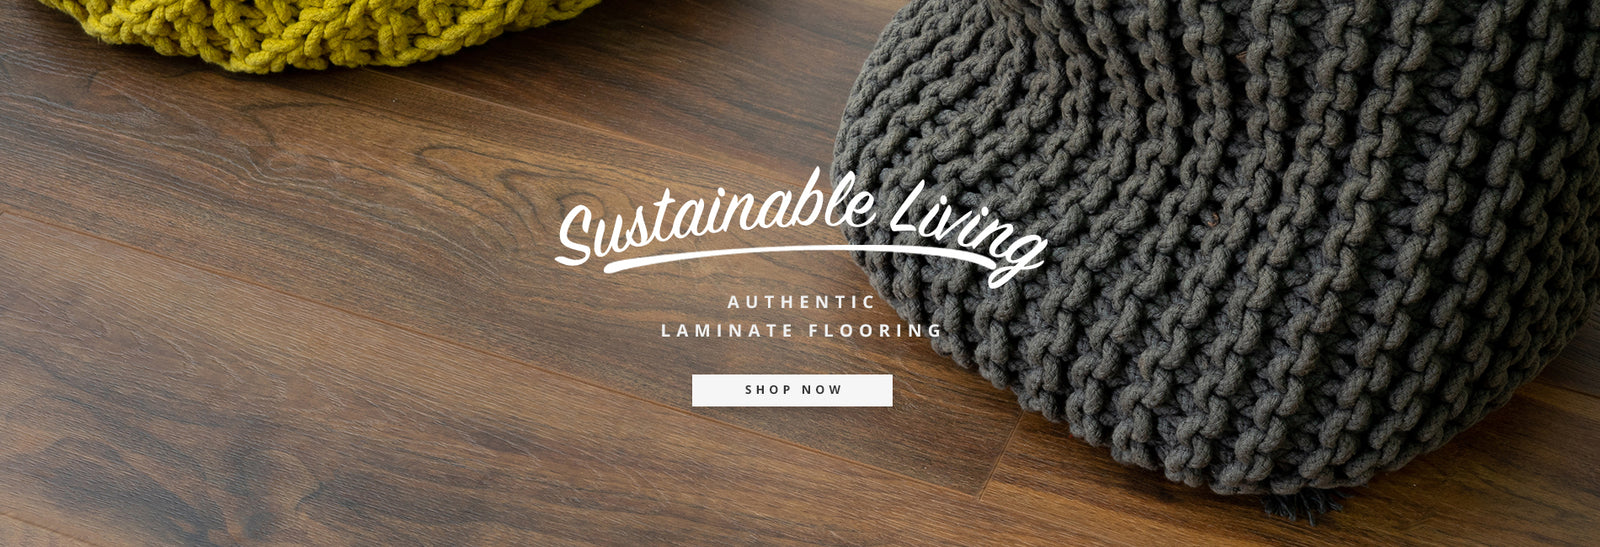 Sustainable Living - Shop authentic laminate flooring now